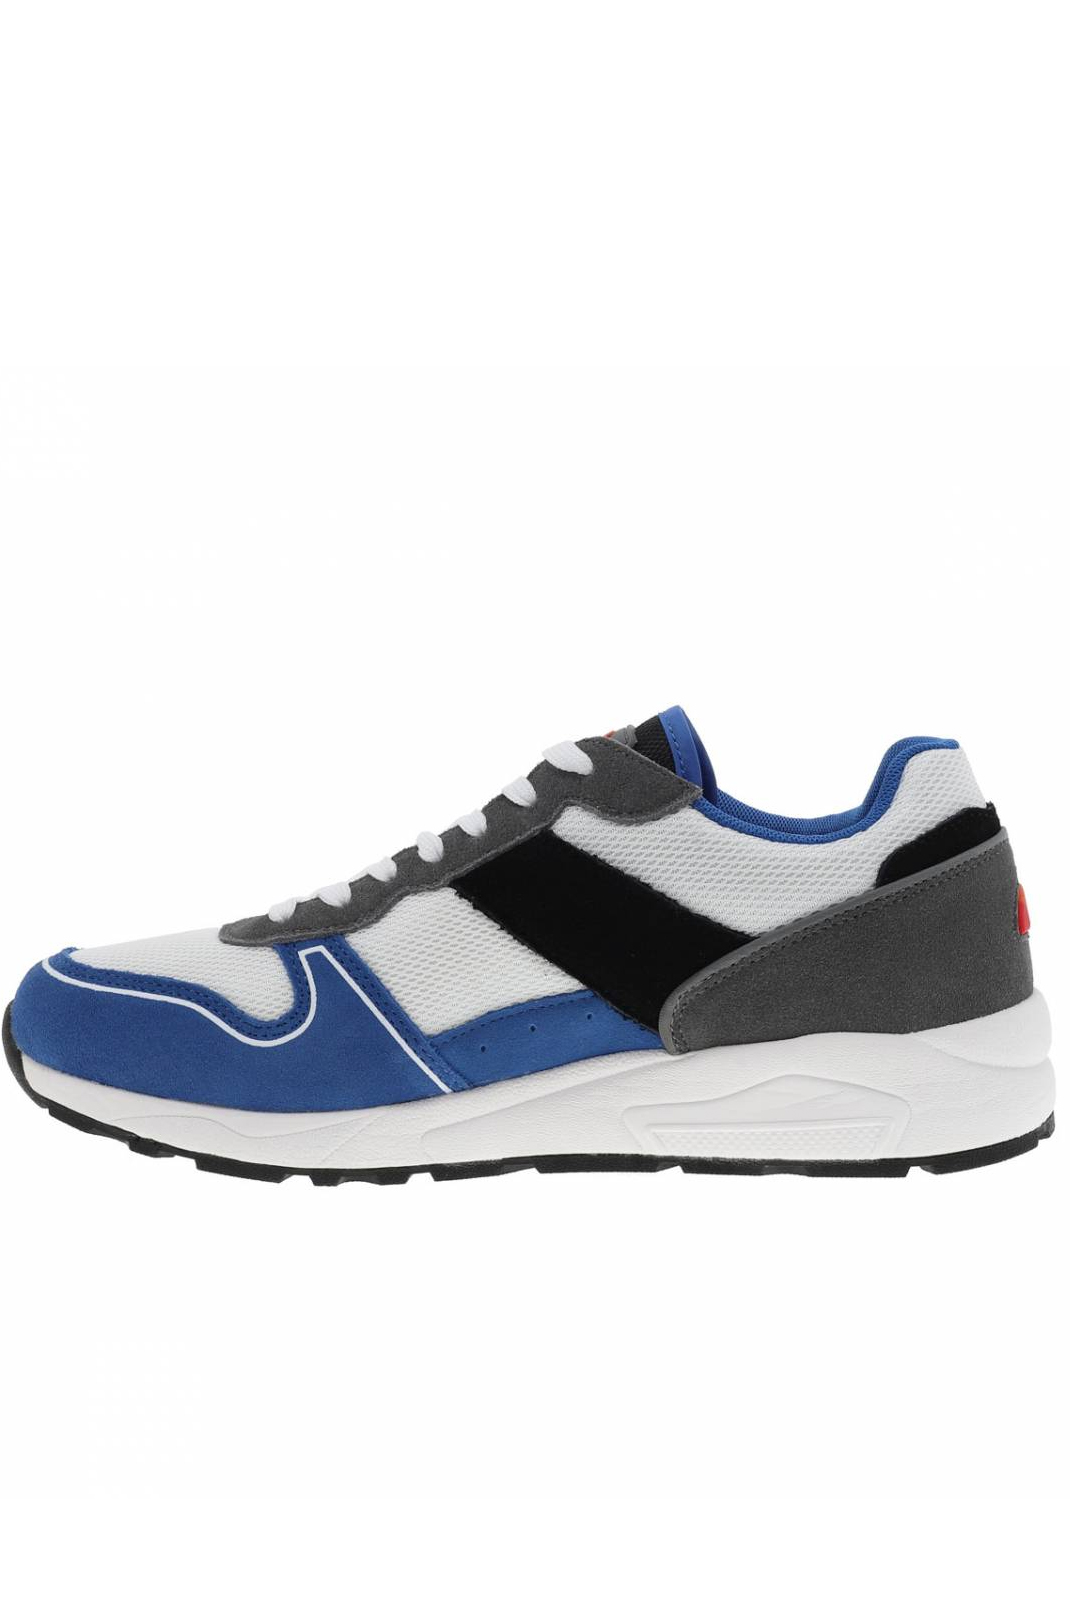 Baskets / Sport  Ellesse RUNNING 1 BLUE BLACK CIMENT